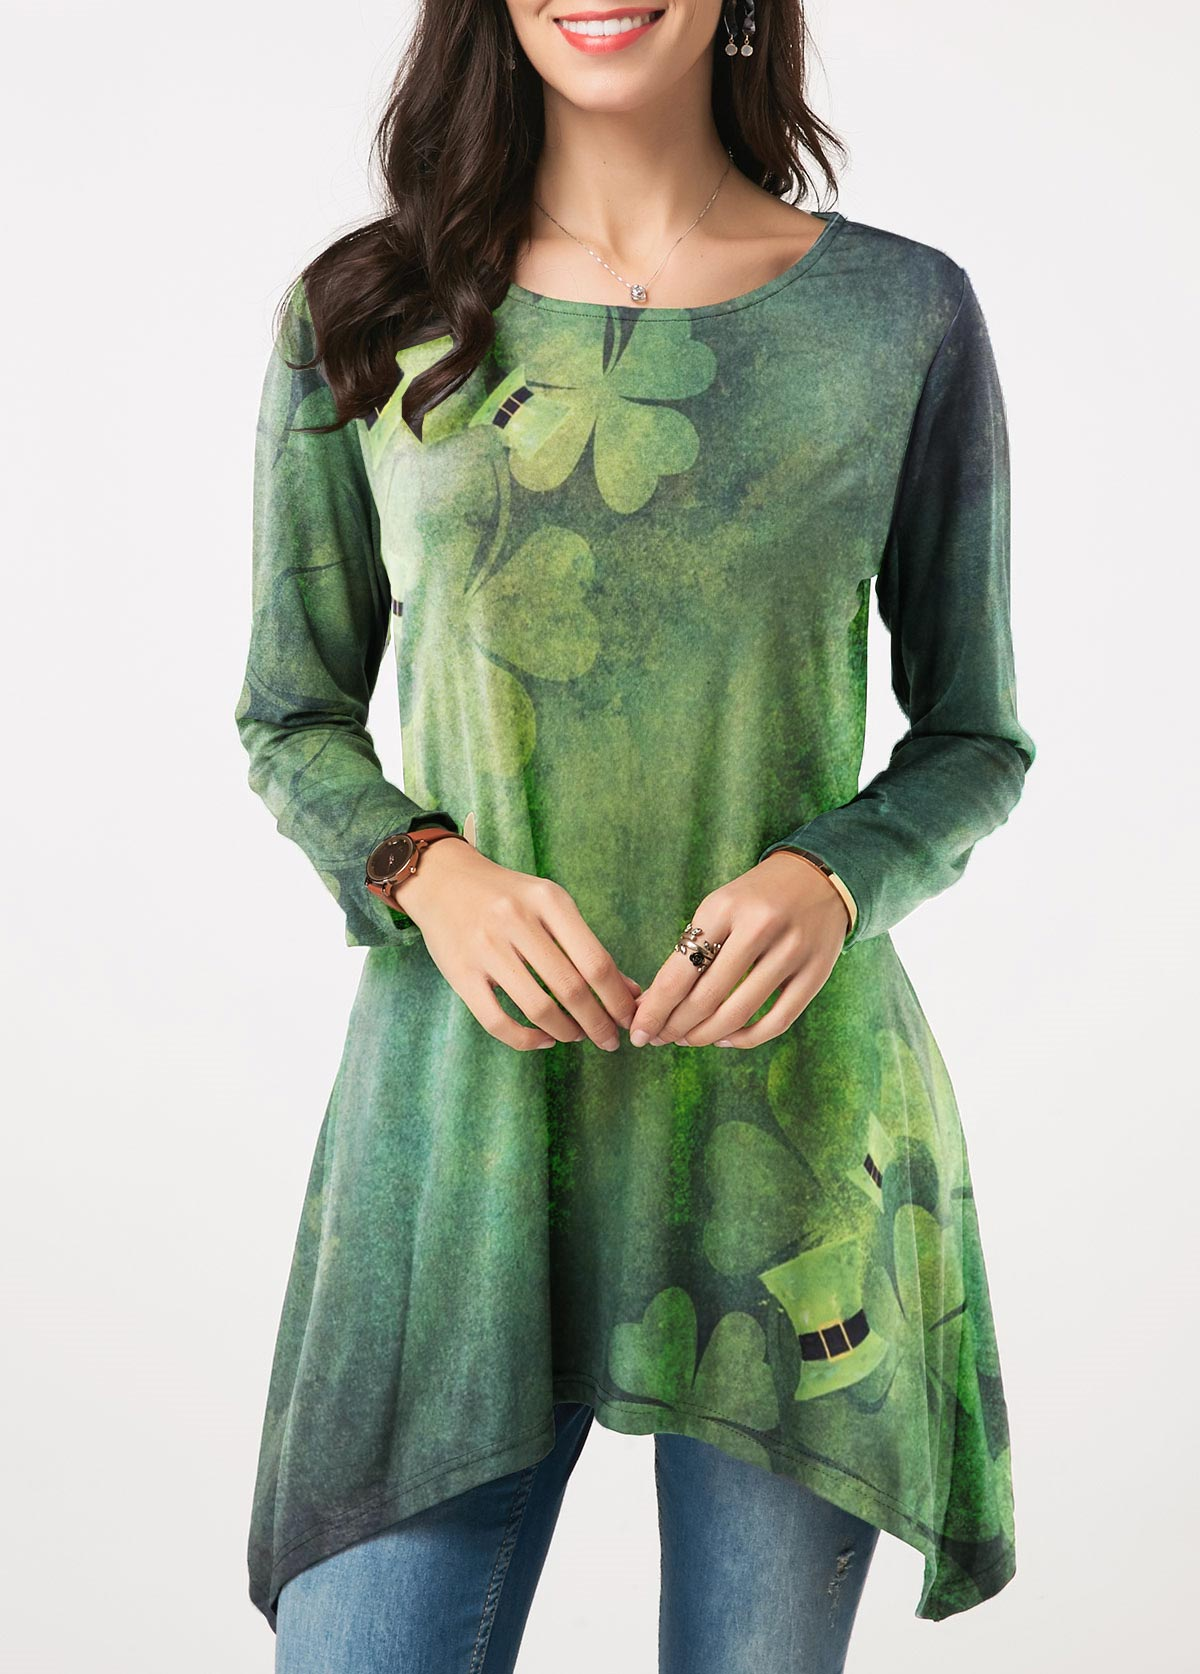 Asymmetric Hem Clover Print ST Patricks Day T Shirt